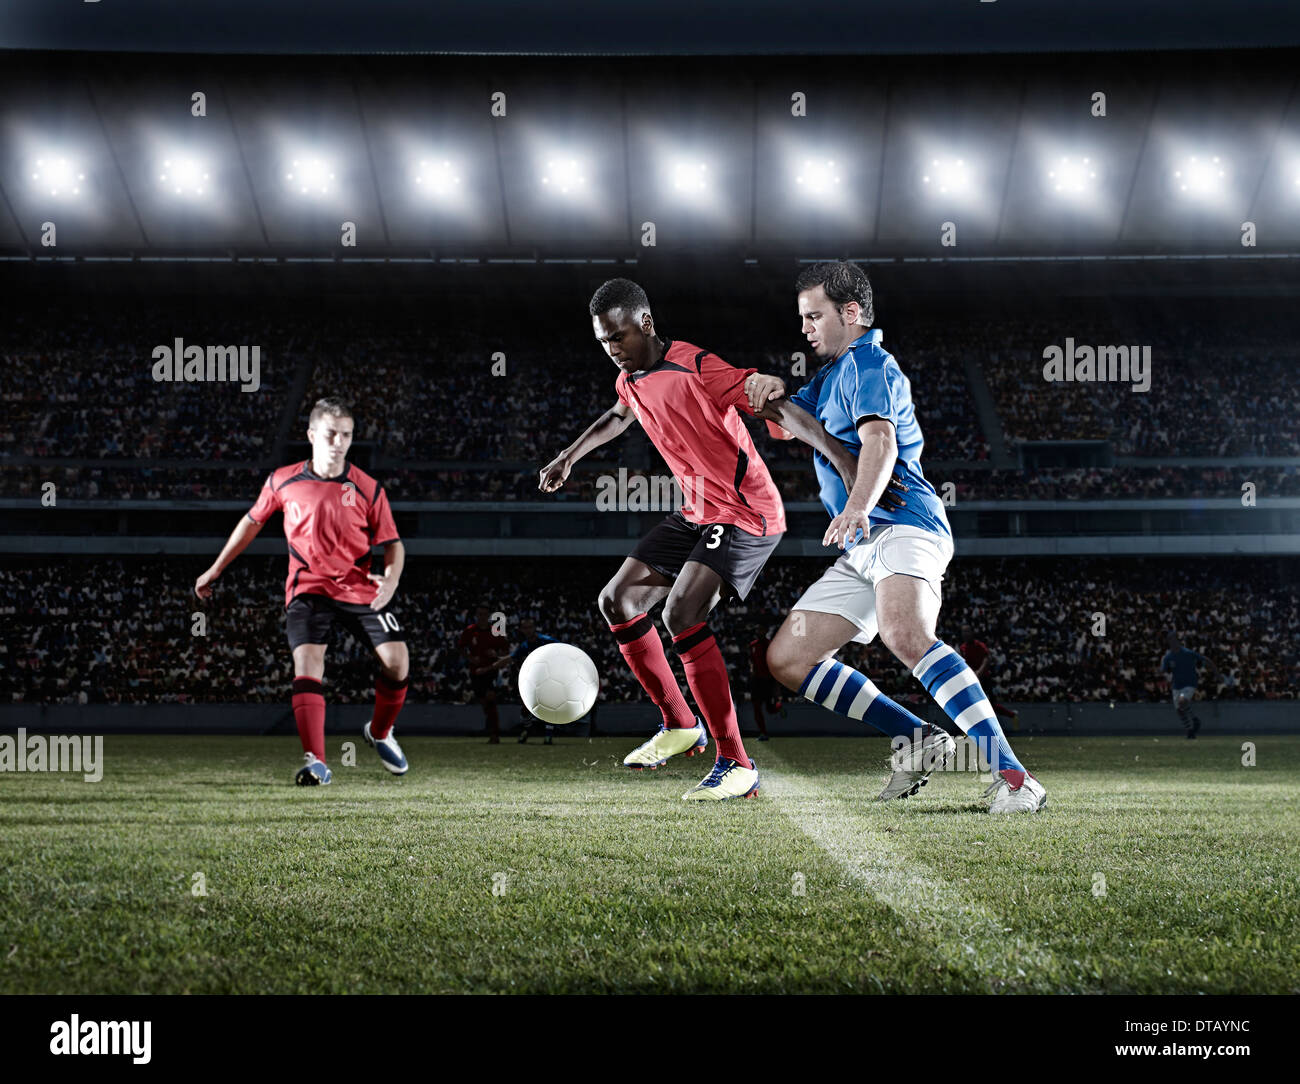 Soccer players with ball on field - Stock Image